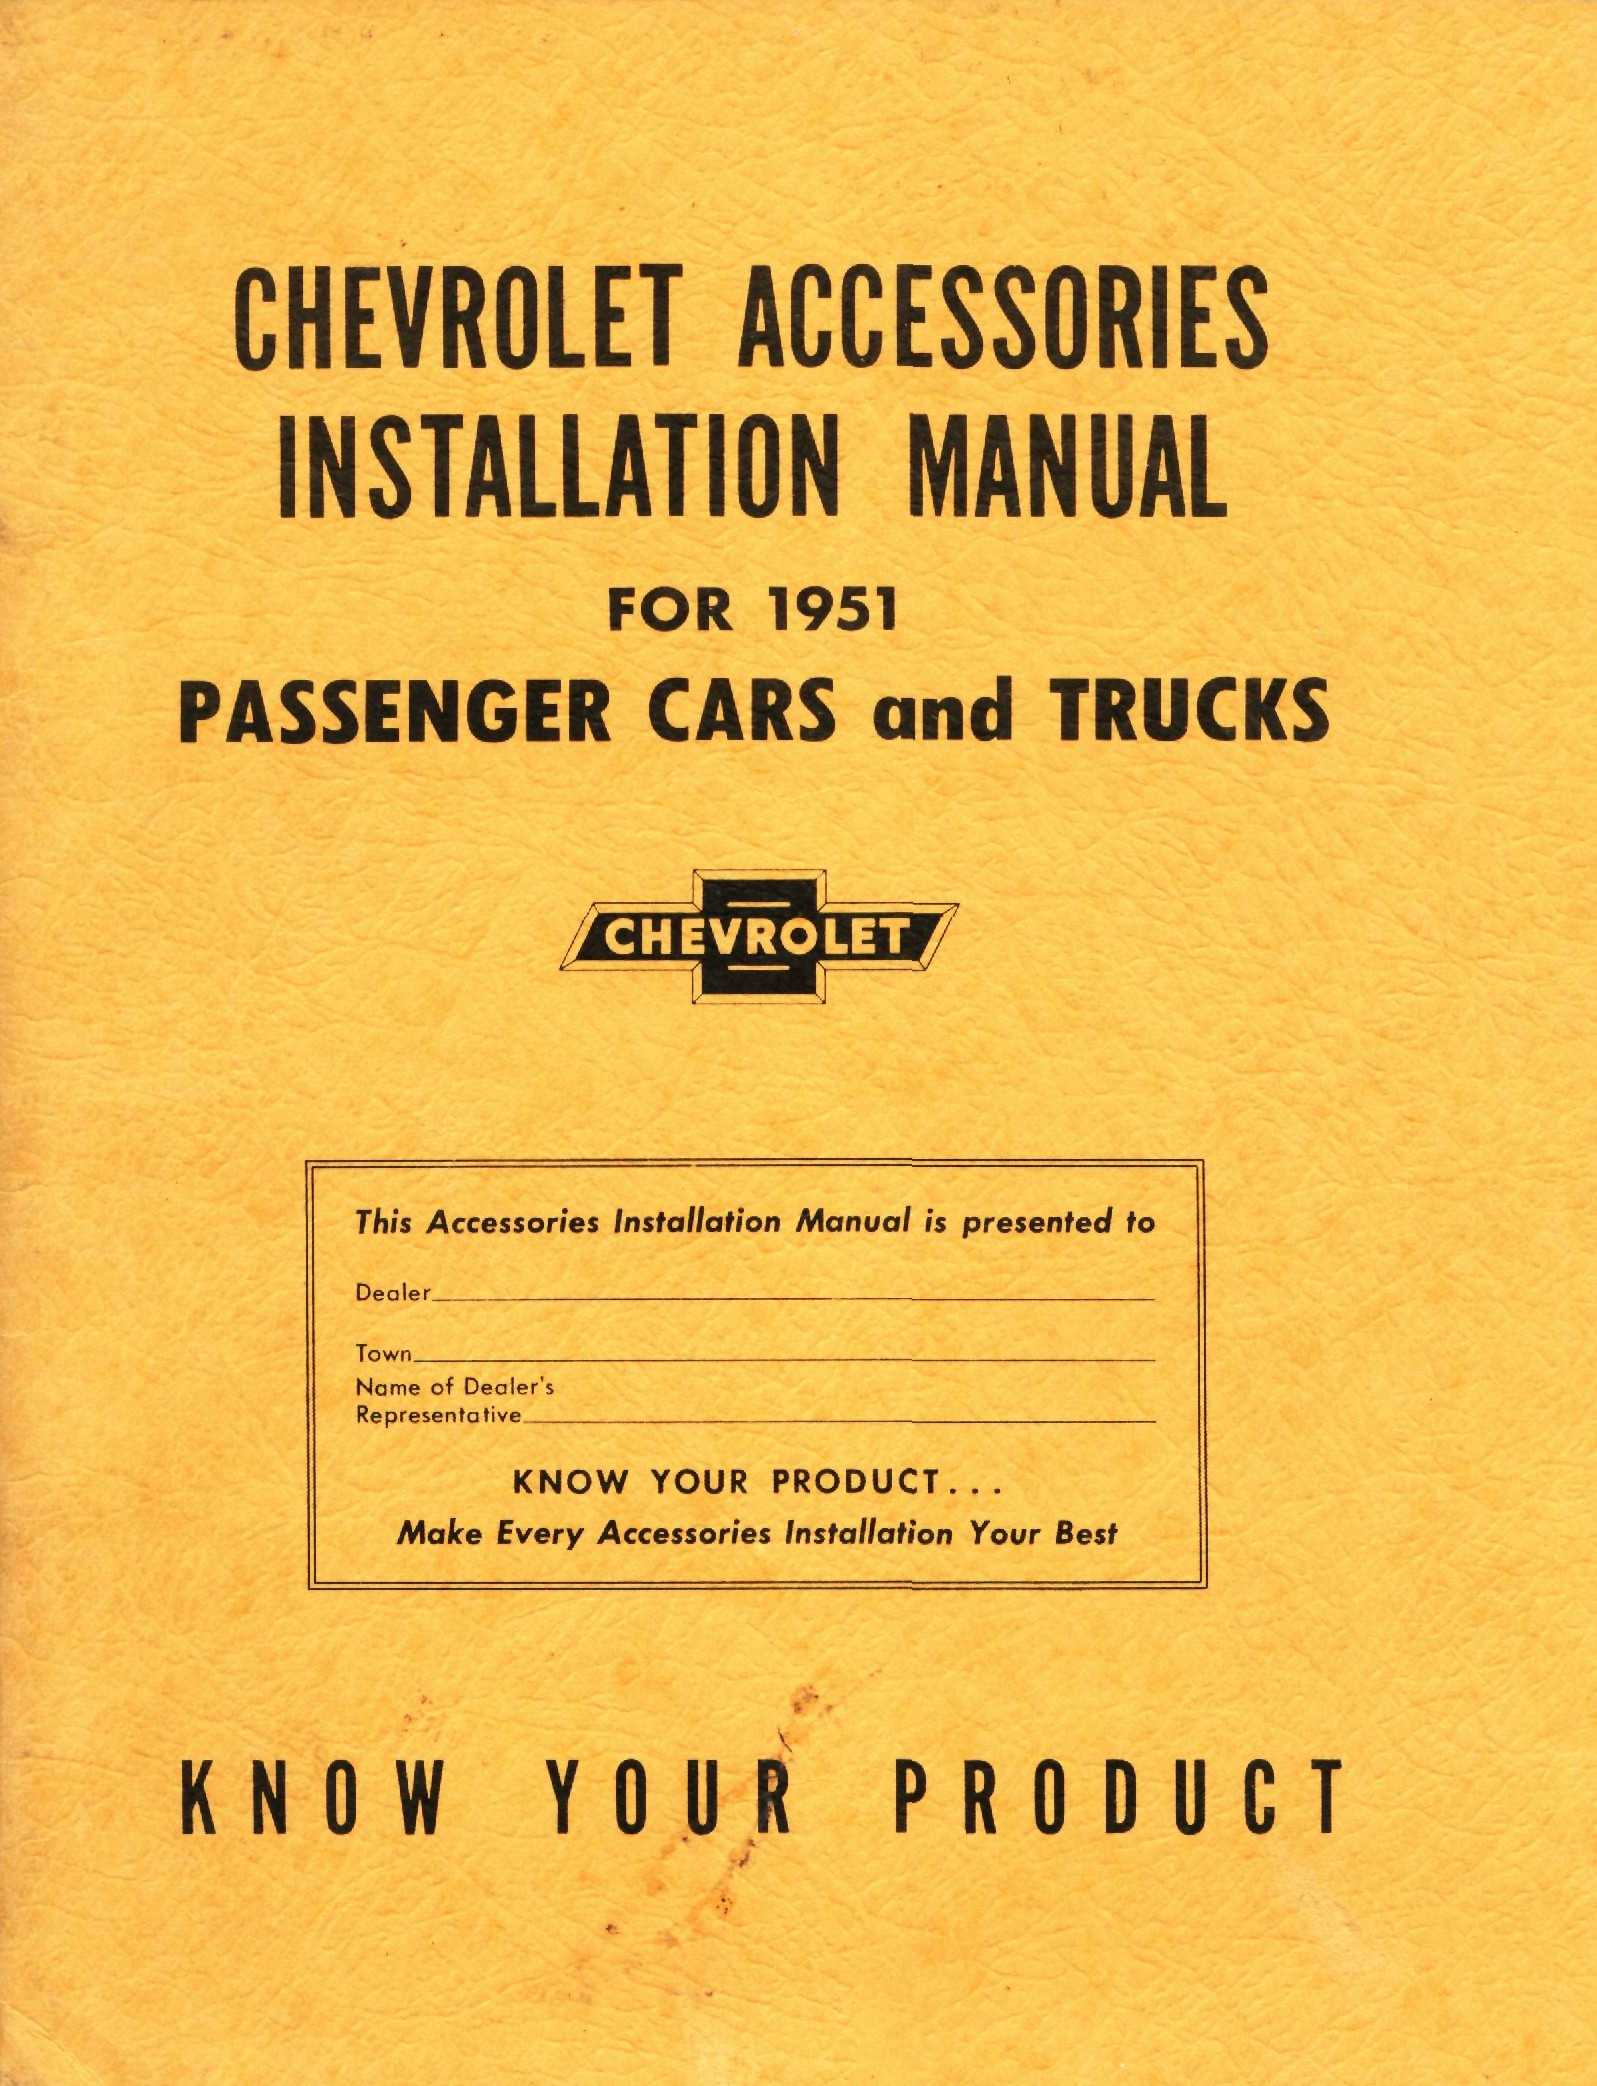 1951 Chevy Accessories